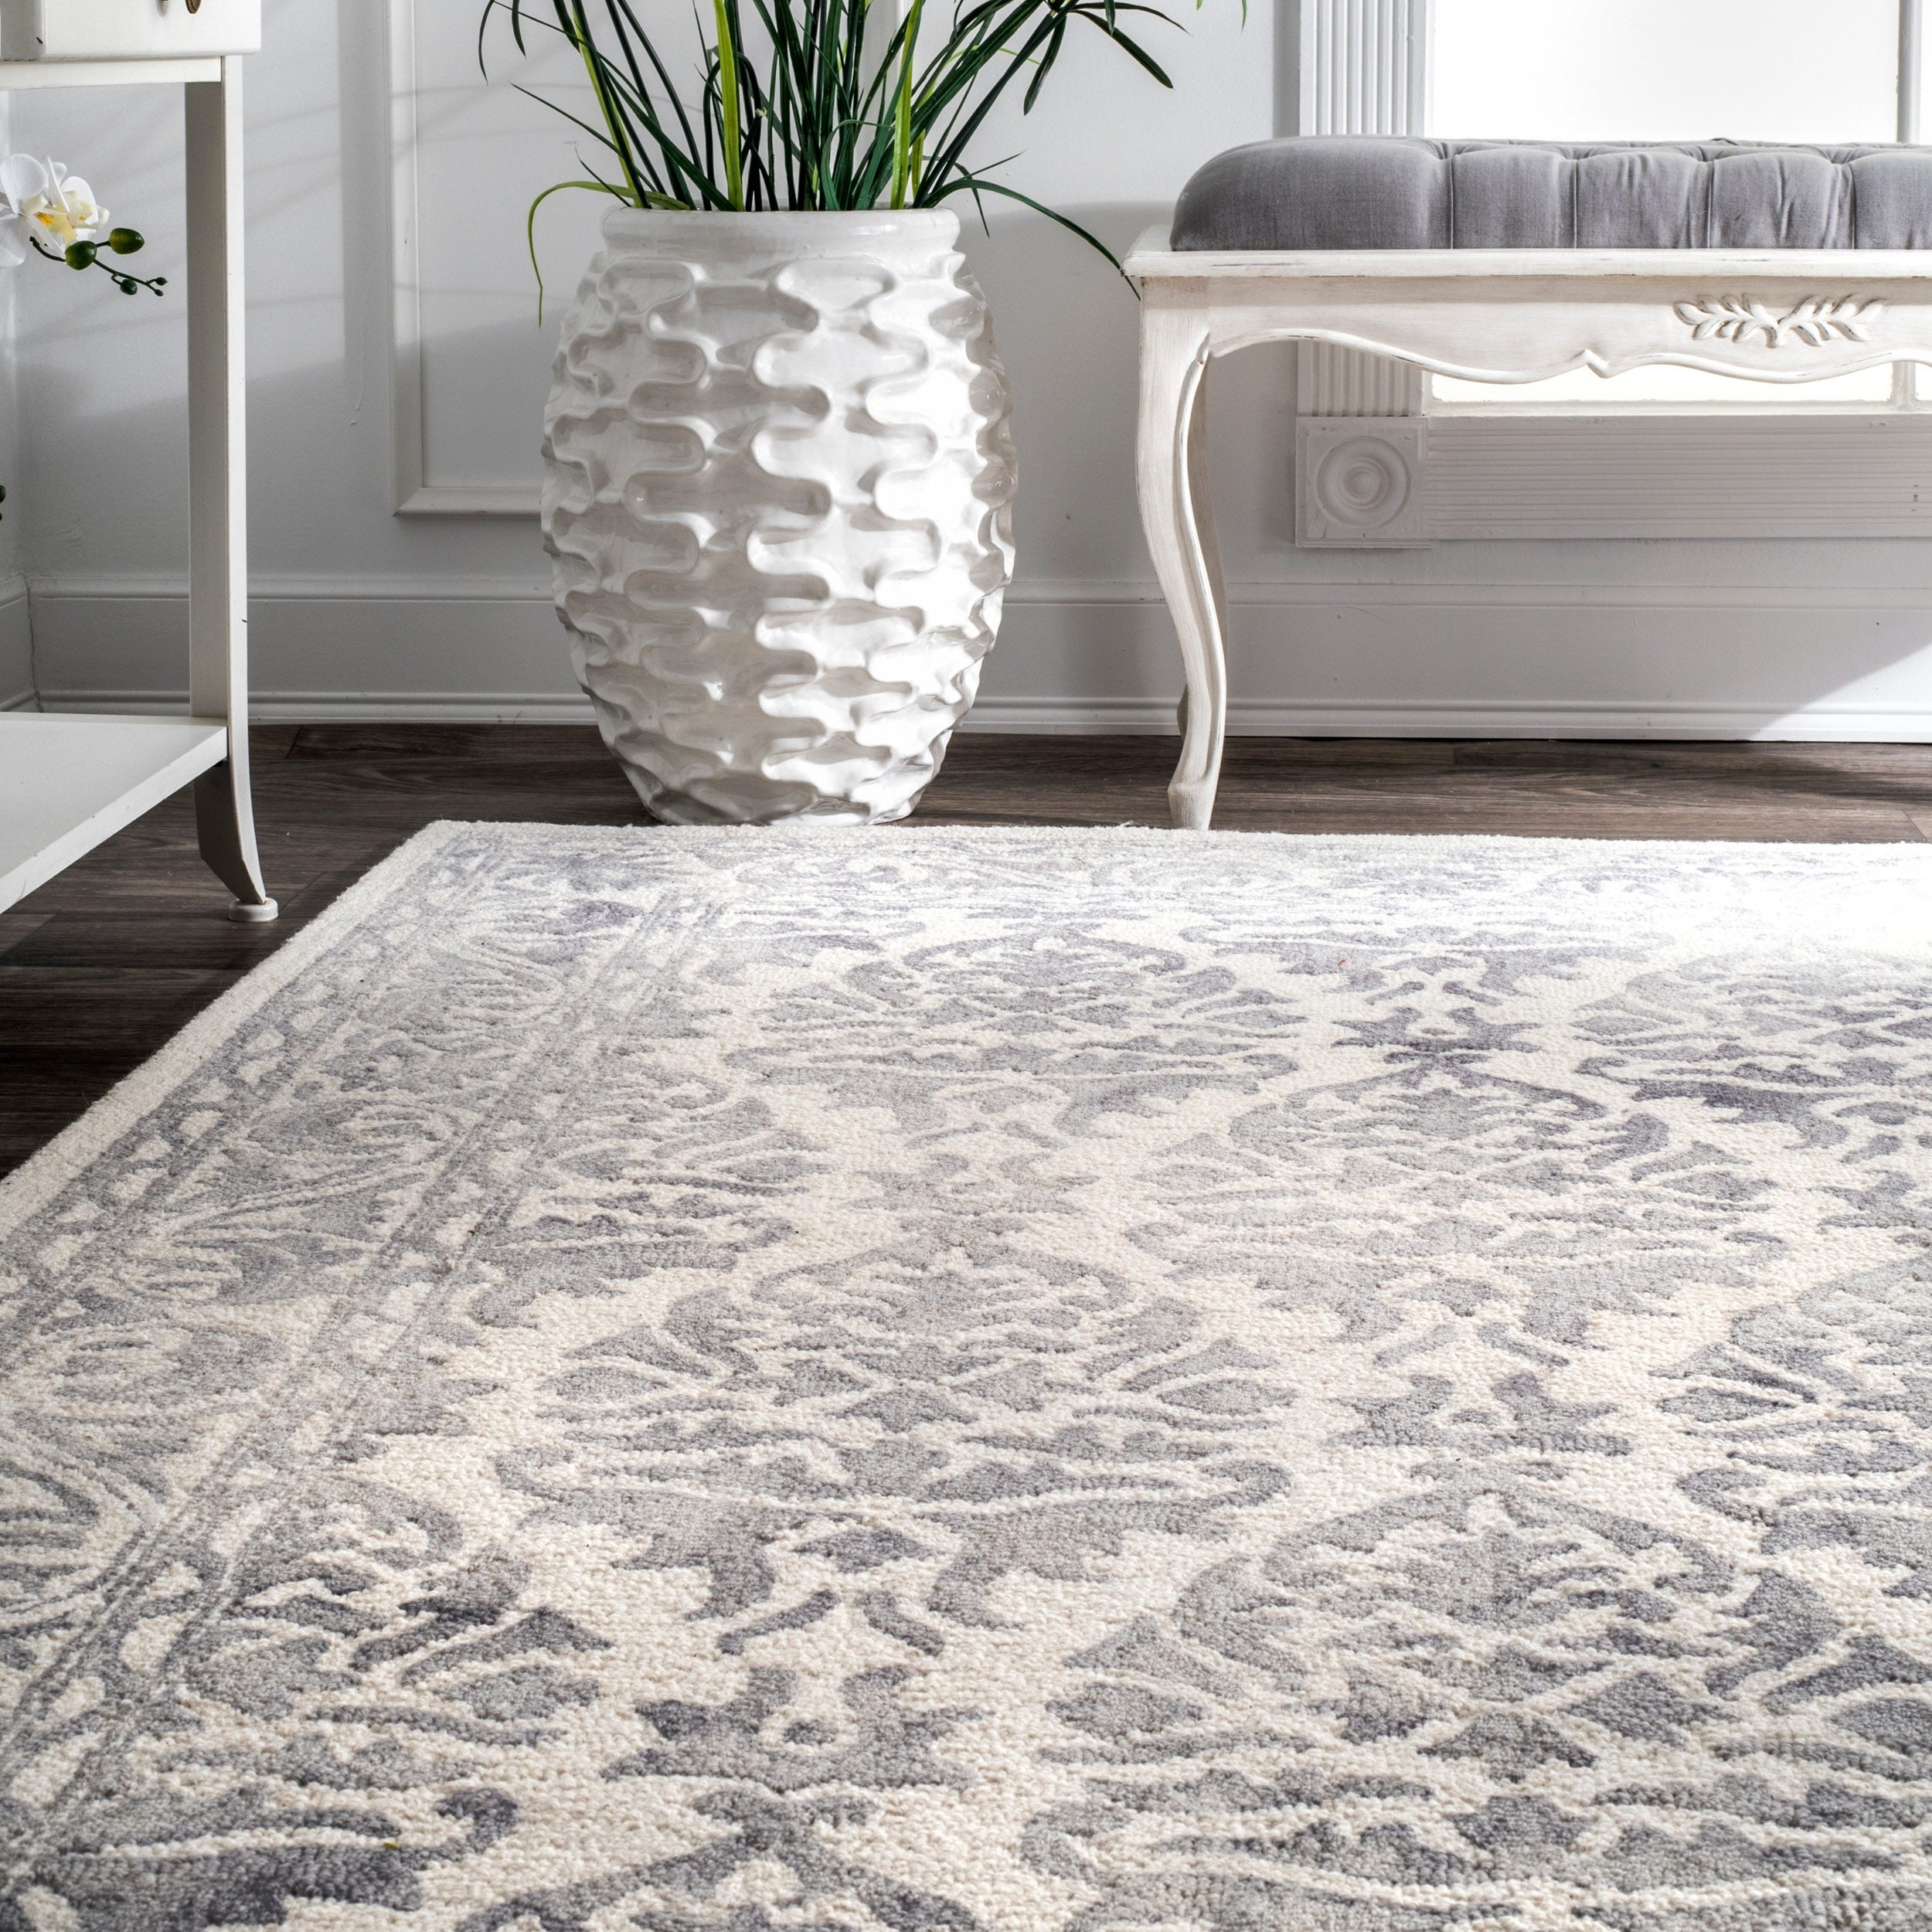 Nuloom Light Grey Handmade Dip Dyed Damask Wool Area Rug 8 6 X 11 On Free Shipping Today 10664246